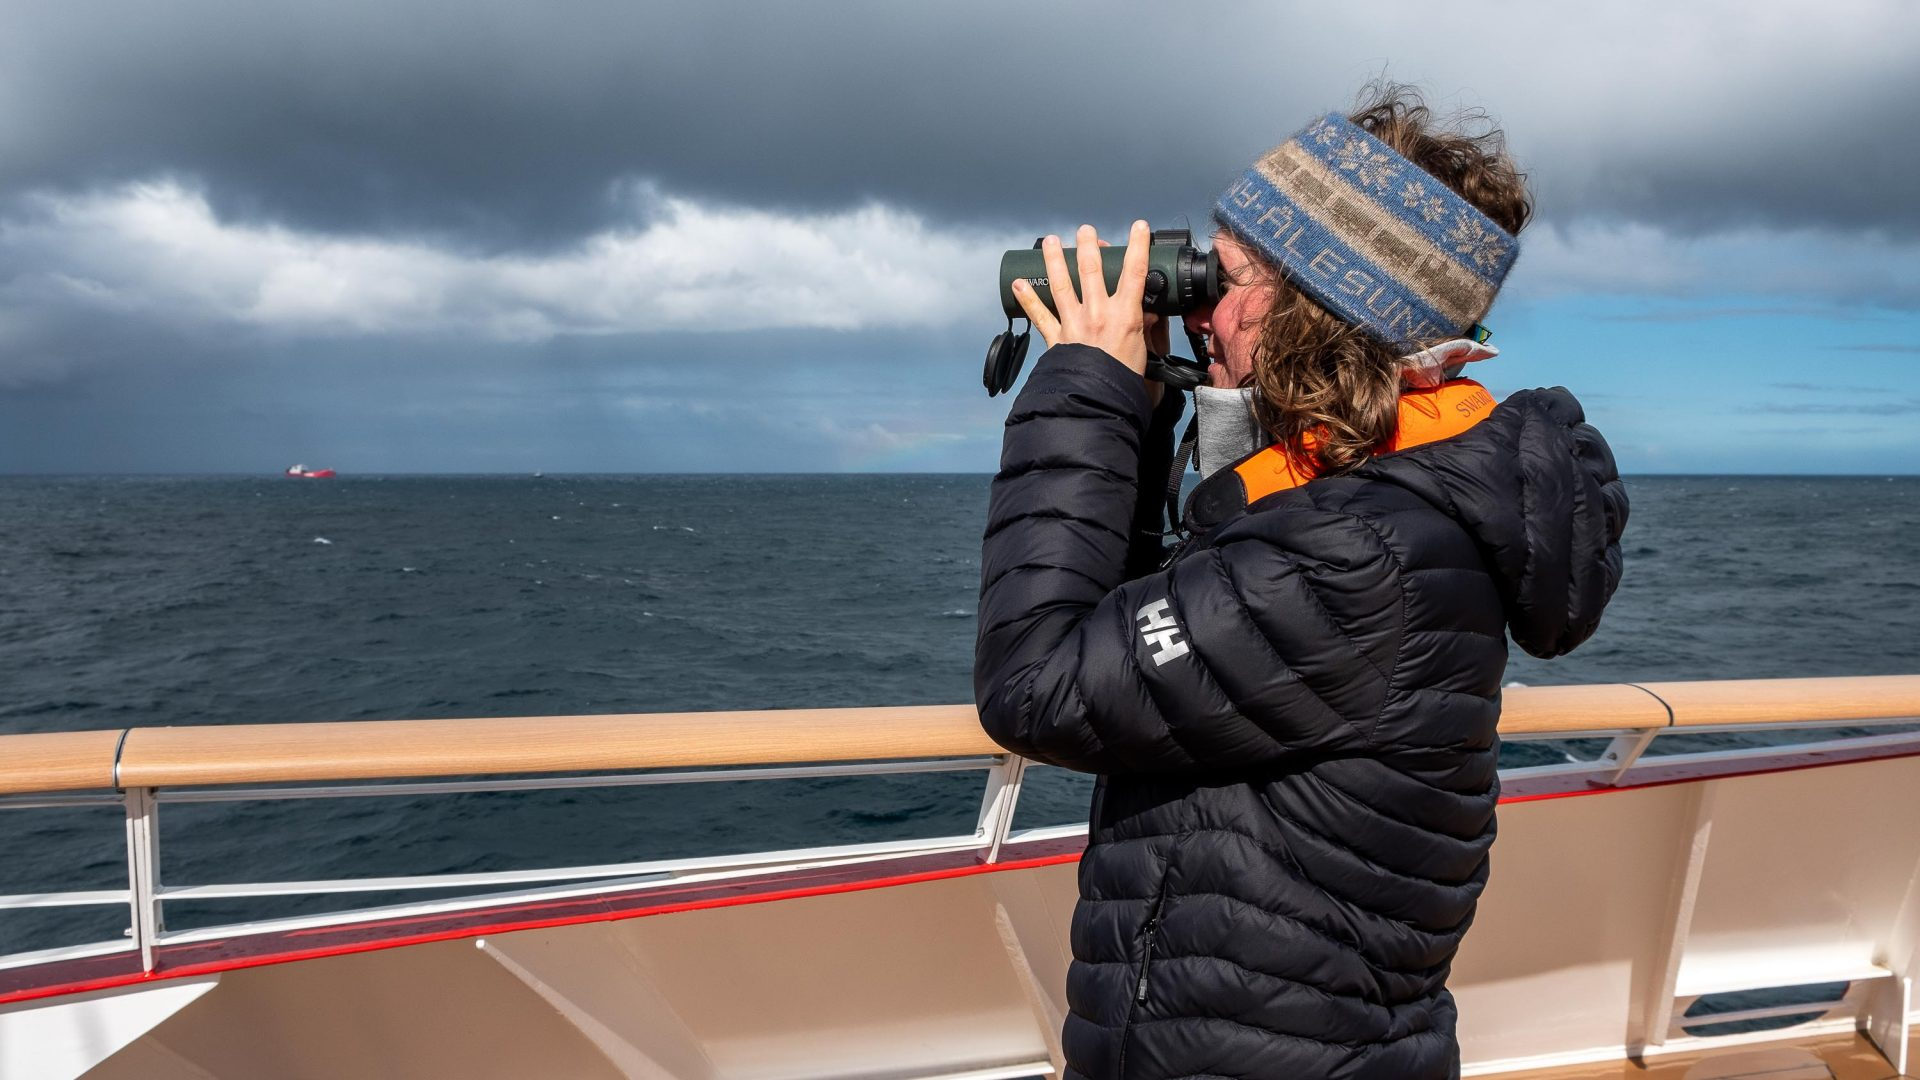 A passenger aboard the world's first hybrid cruise ship MS Roald Amundsen uses binoculars to look out at the views.